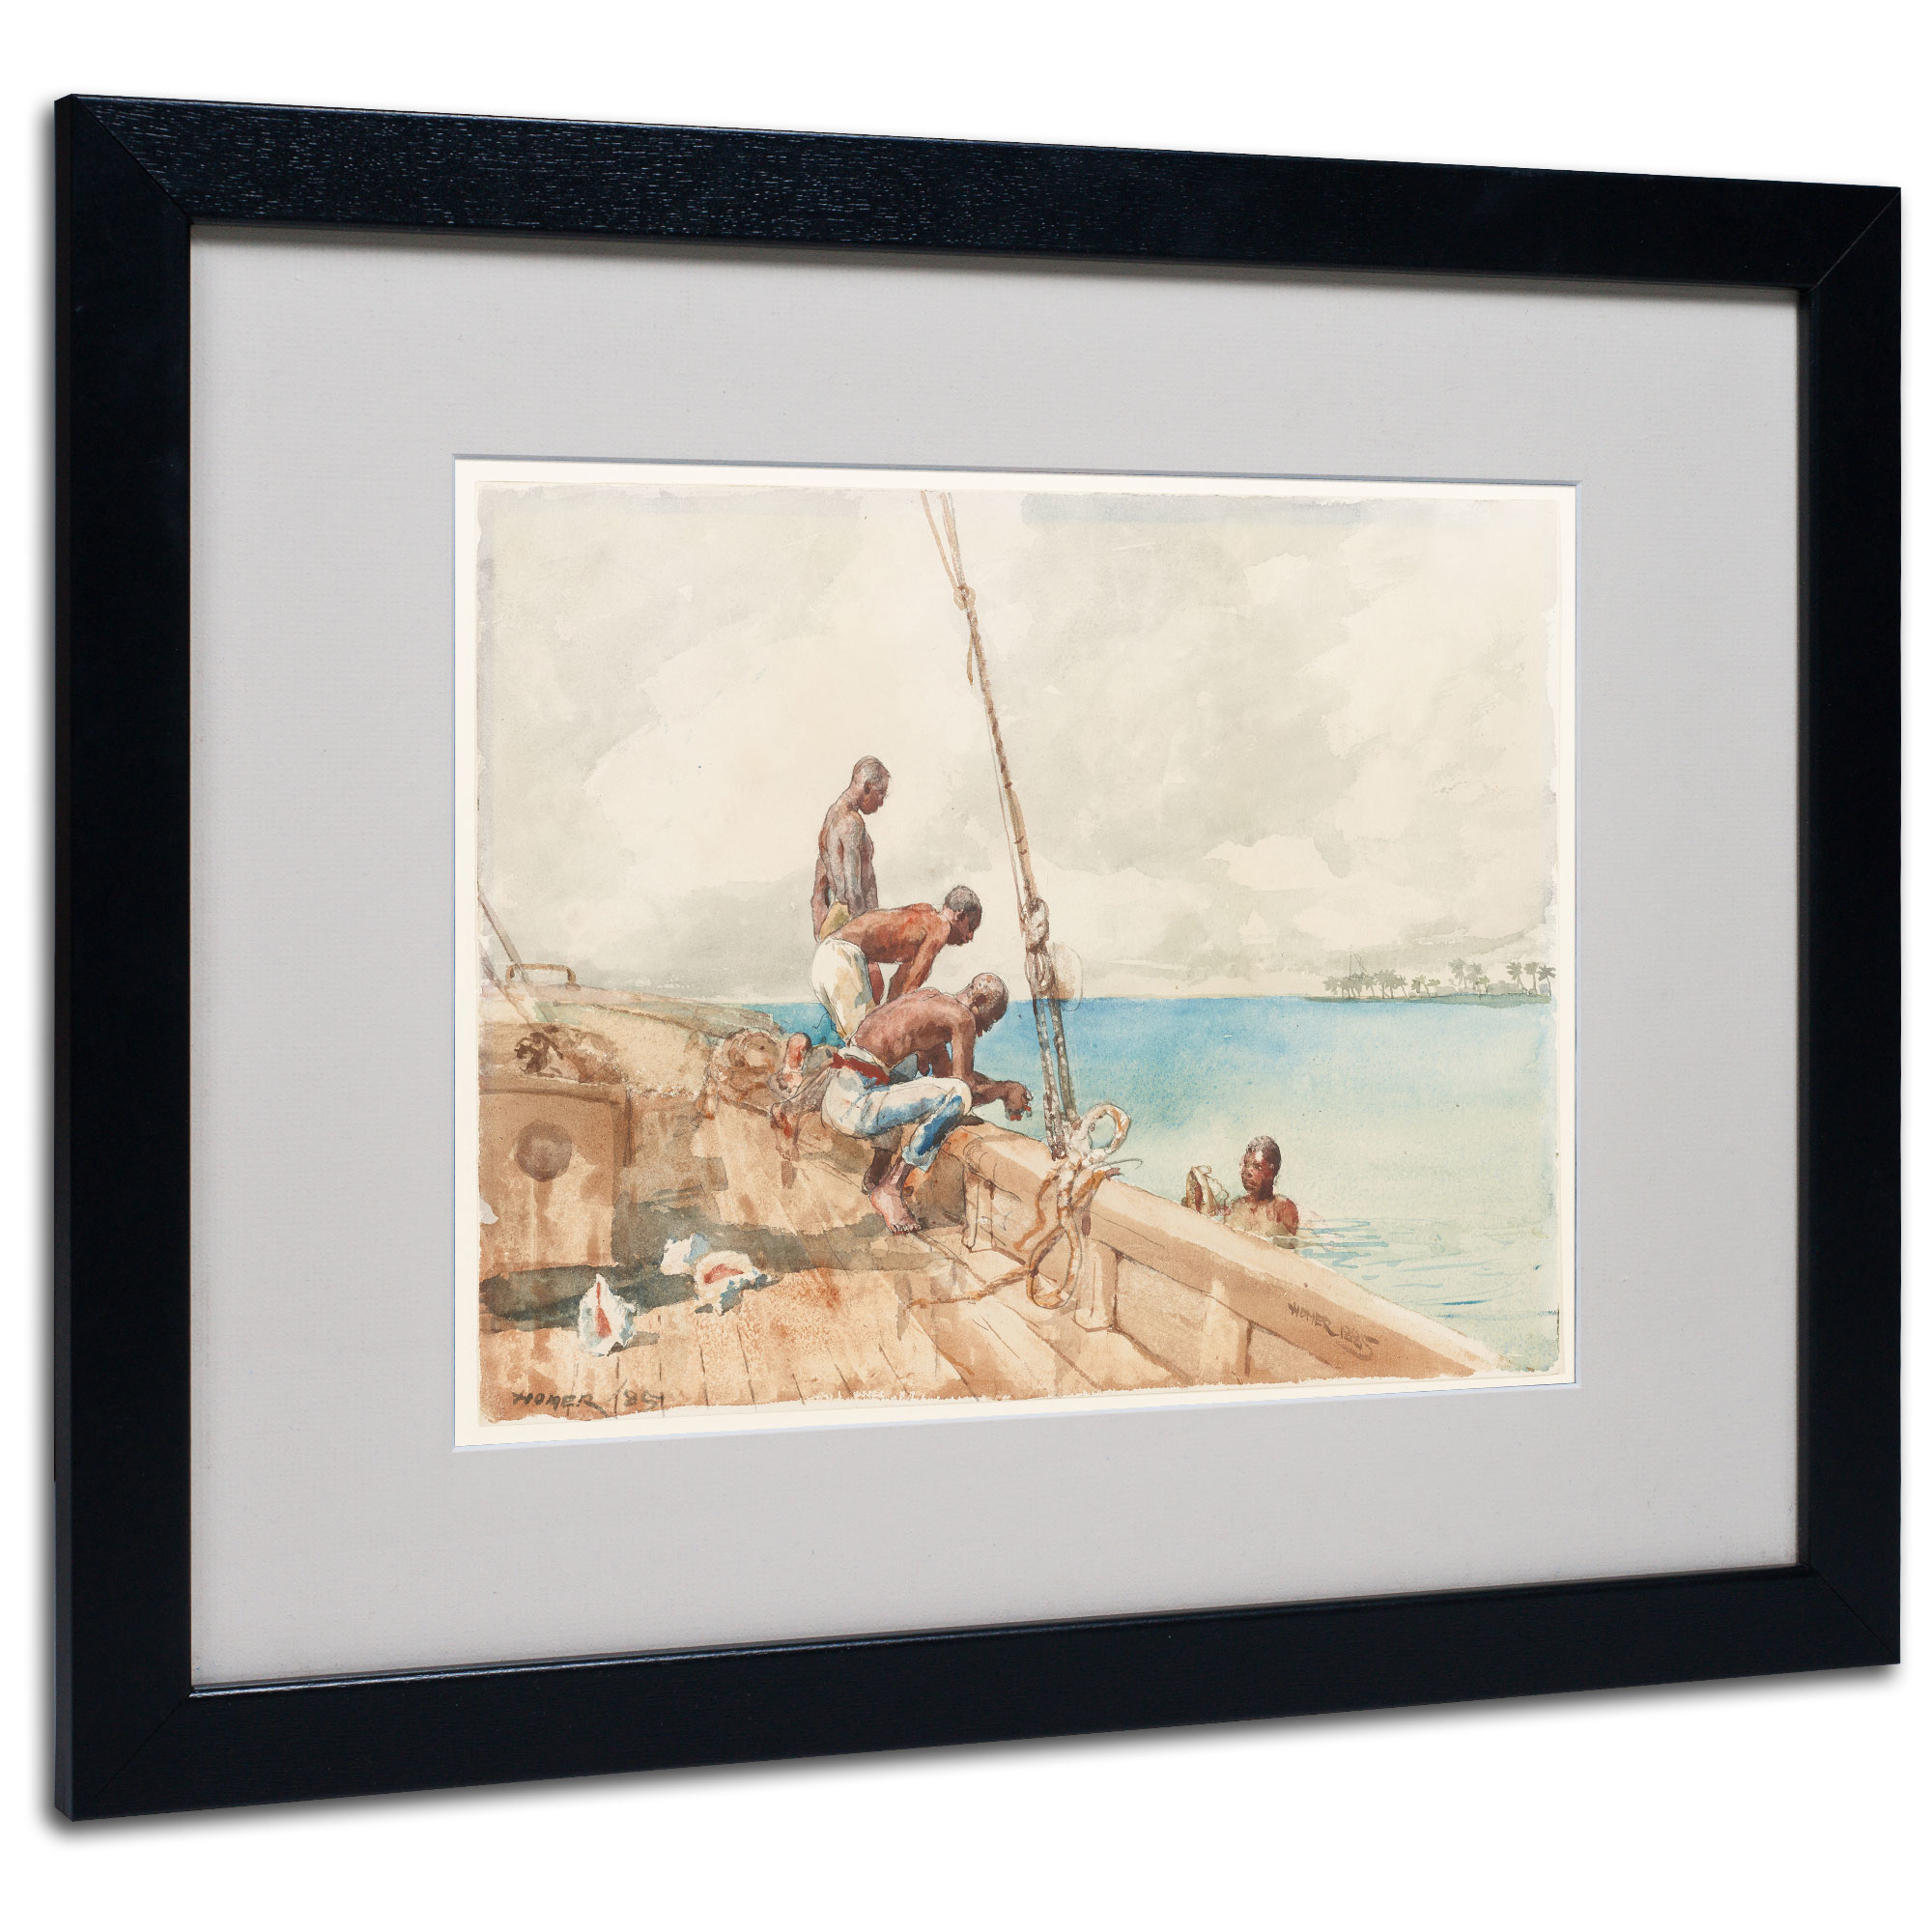 Winslow Homer 'The Conch Divers 1885' Black Wooden Framed Art 18 x 22 Inches